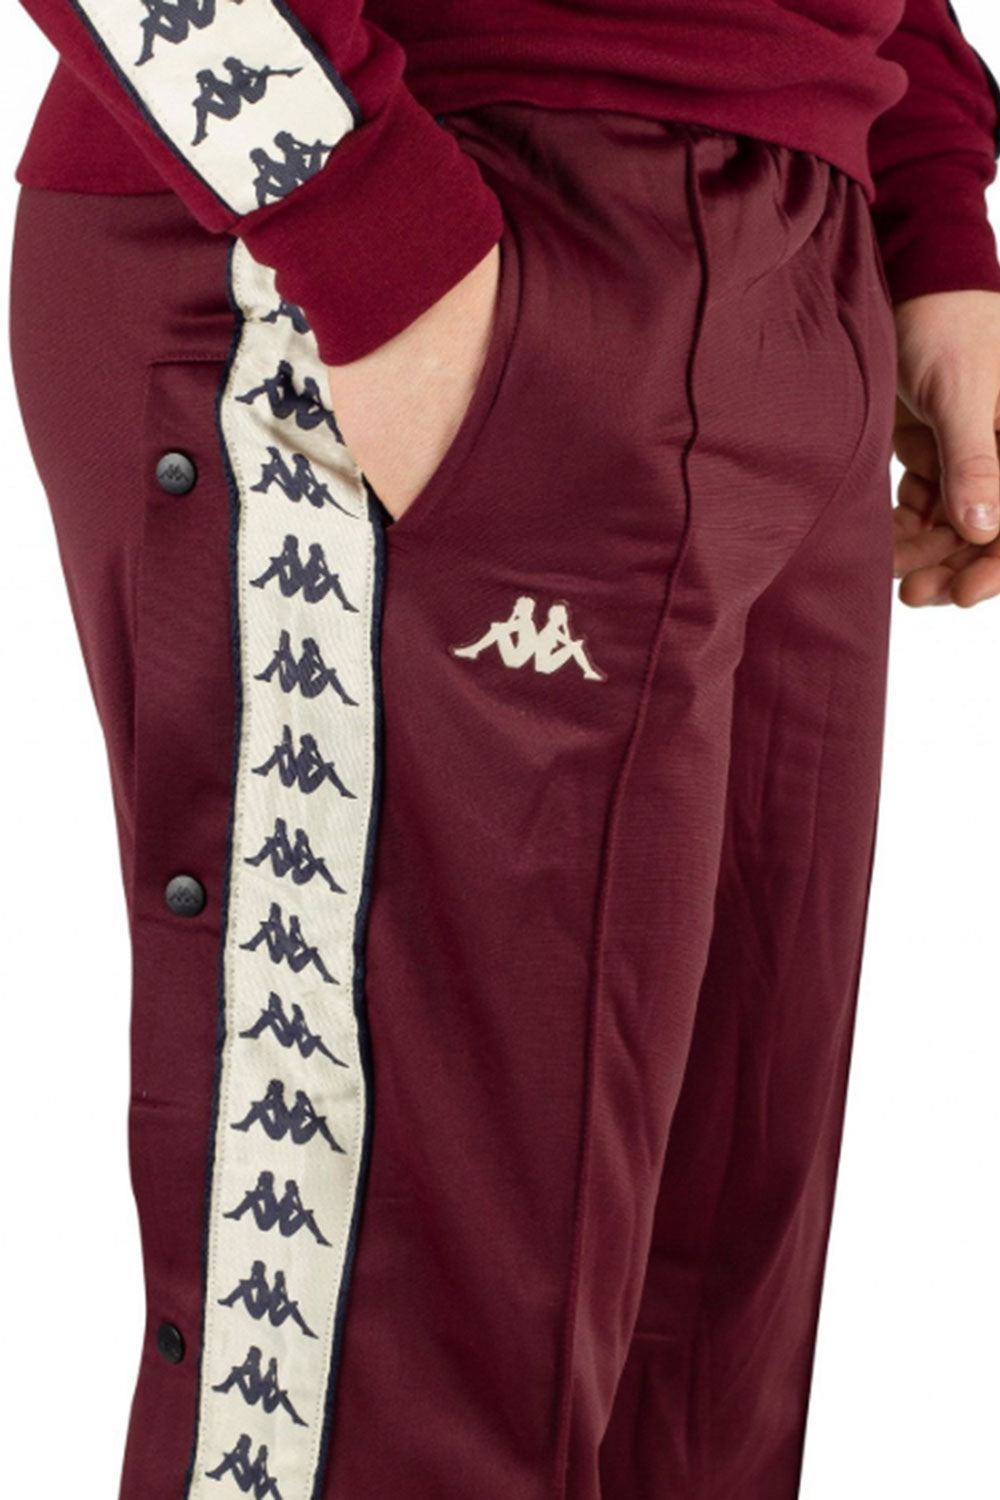 Kappa Authentic Astoria Snap Pants - Dark Red Damson/ Light Beige